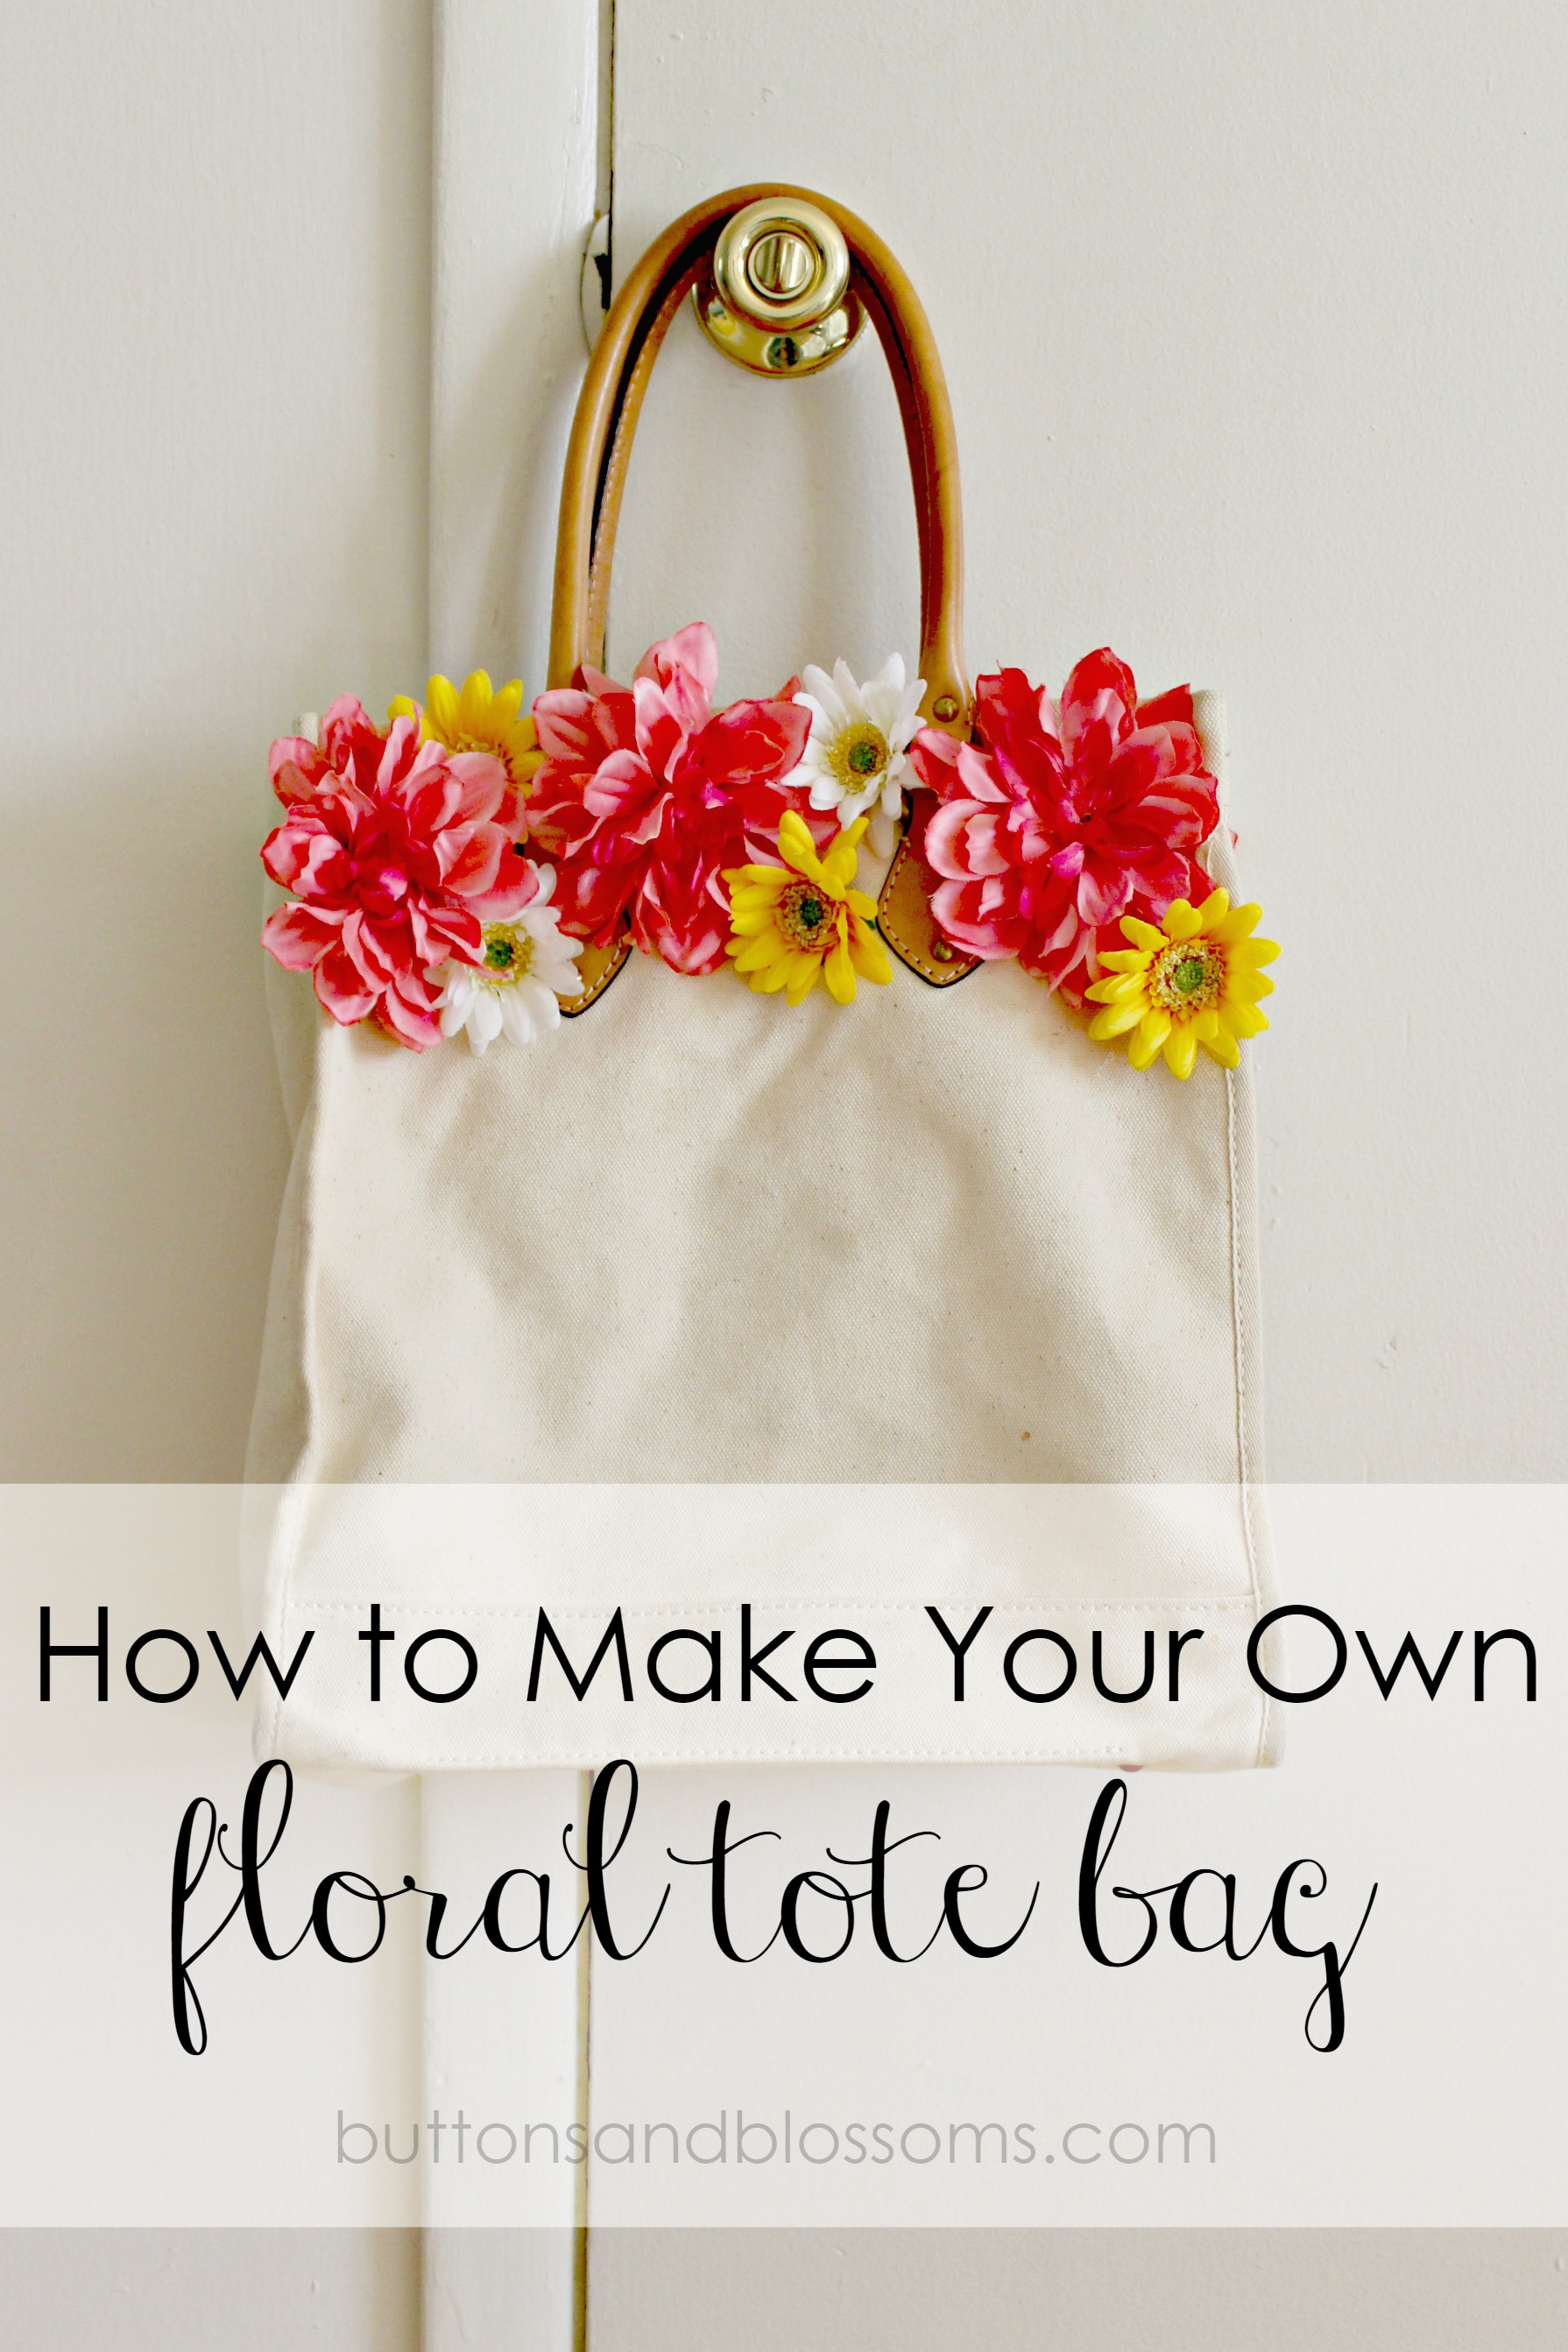 How to make your own floral tote bag